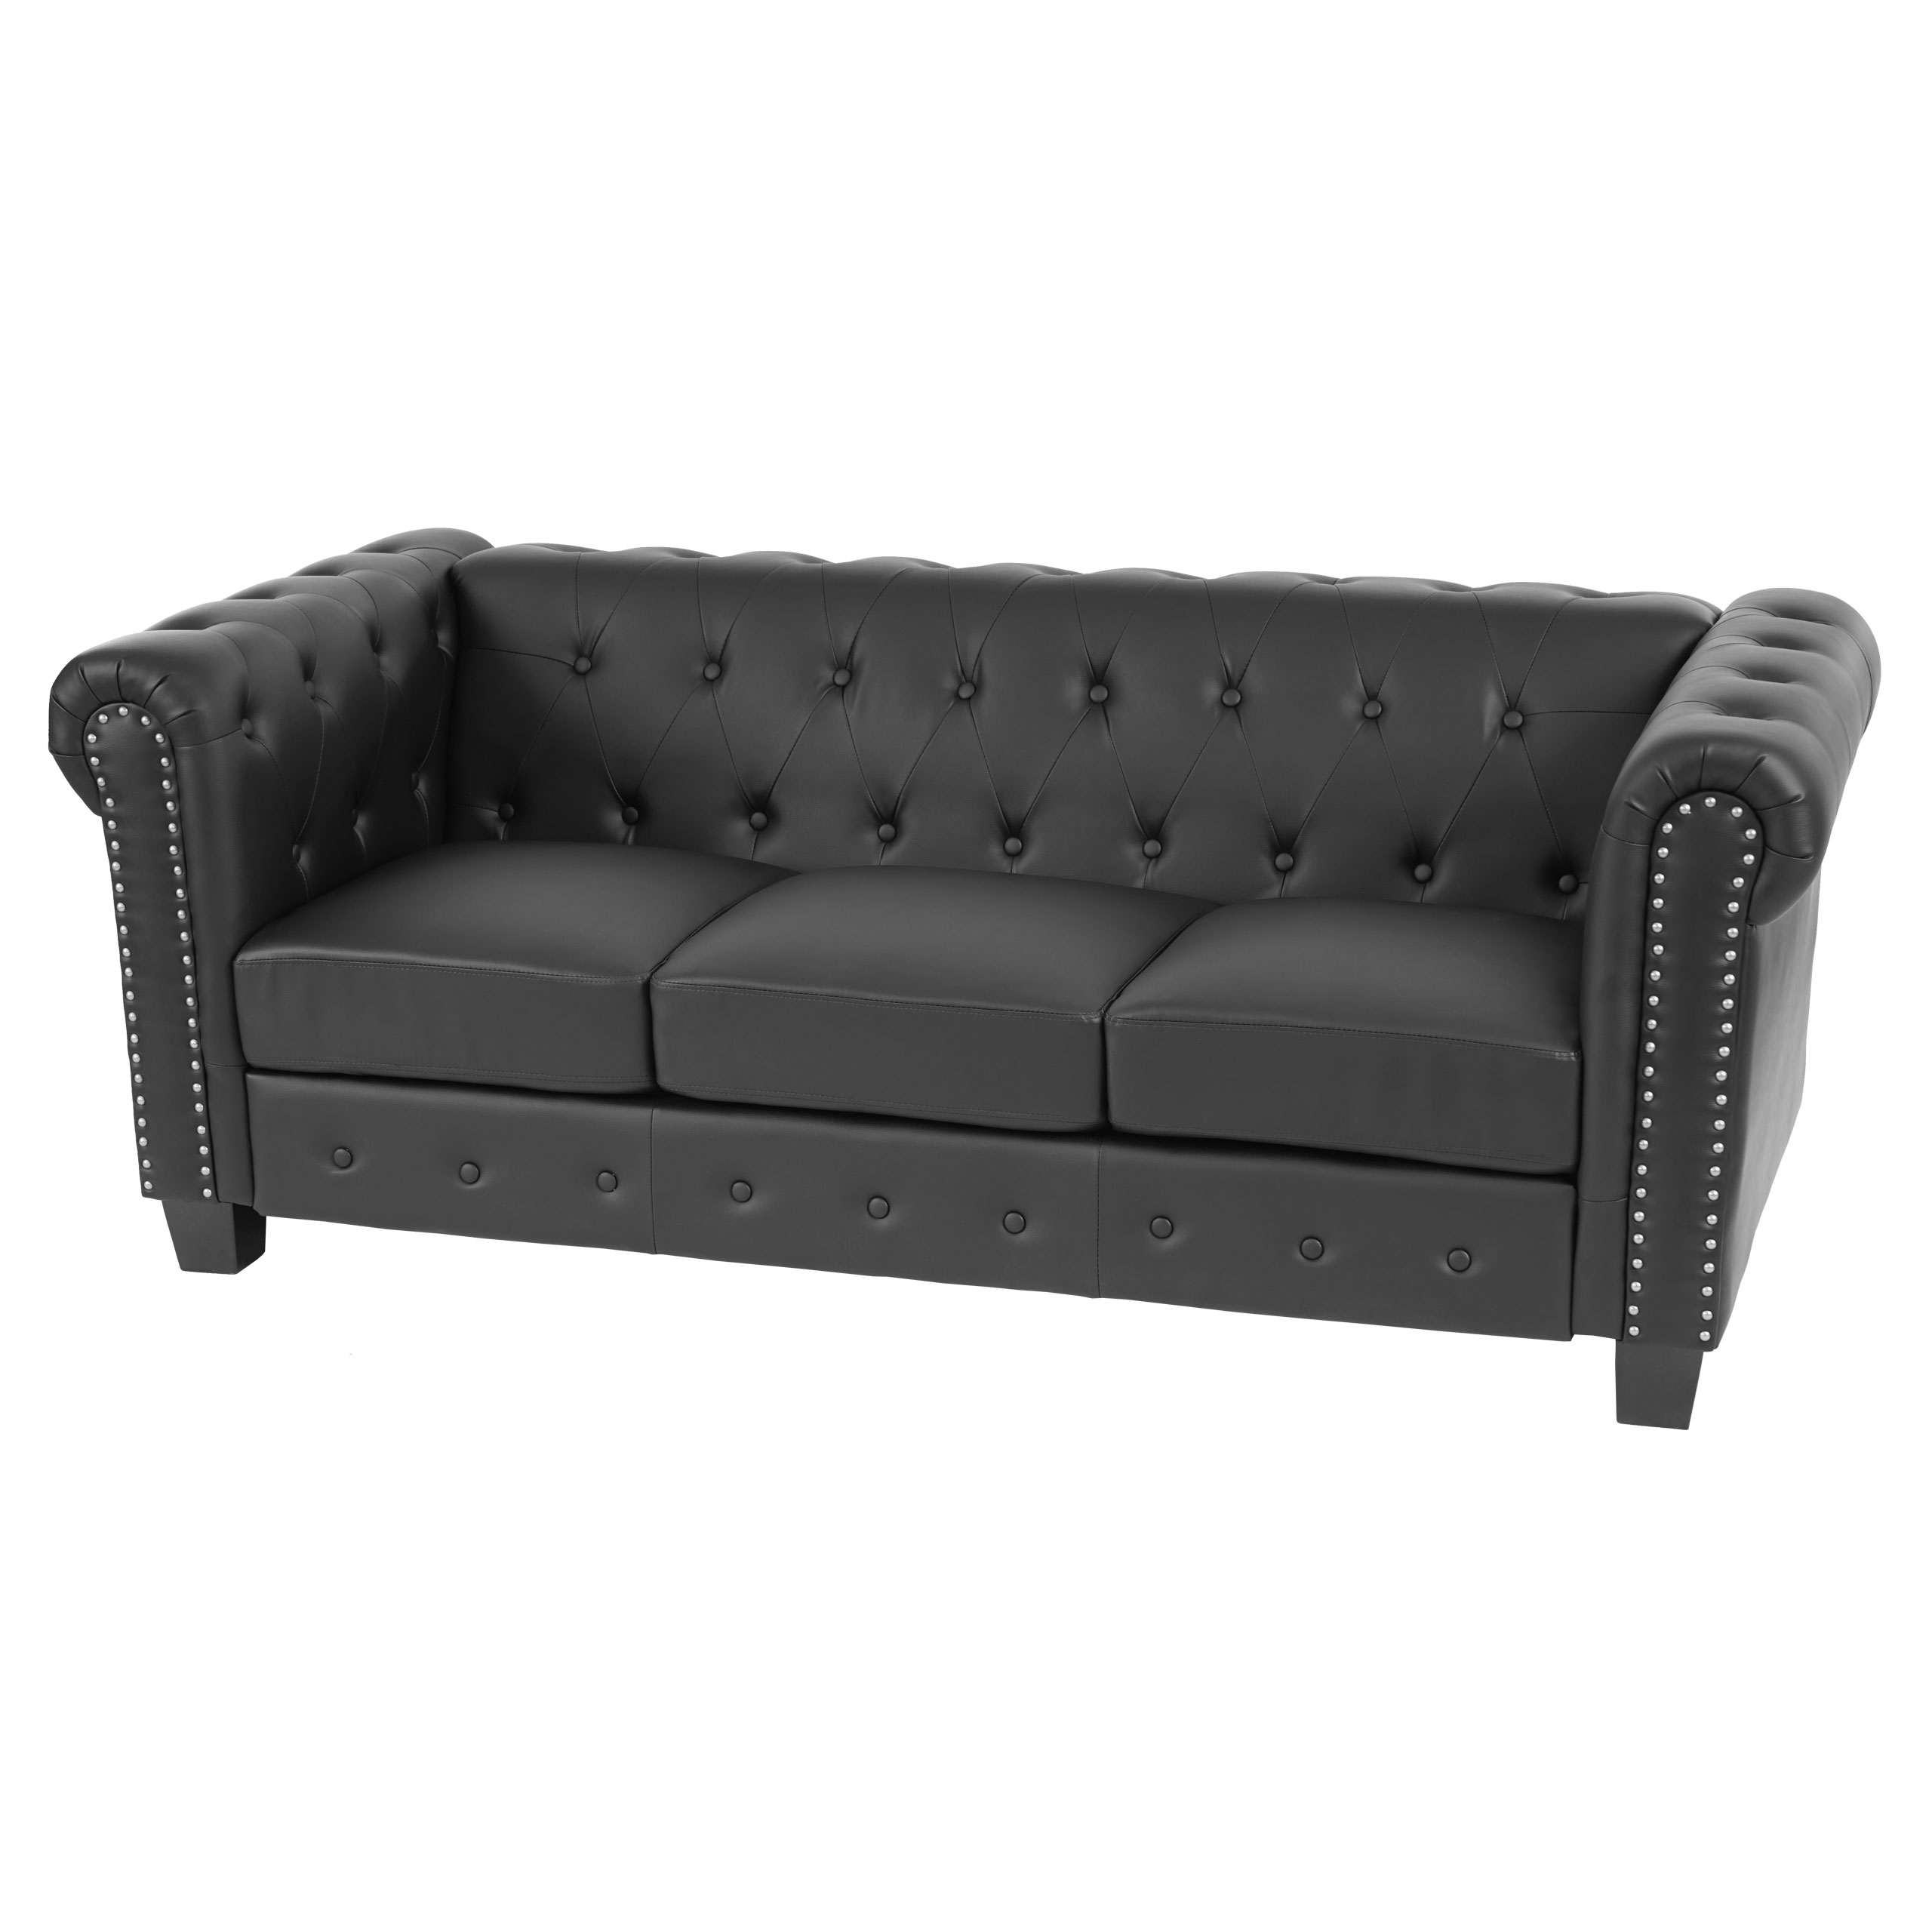 luxus 3er sofa chesterfield loungesofa couch kunstleder runde oder eckige f e ebay. Black Bedroom Furniture Sets. Home Design Ideas